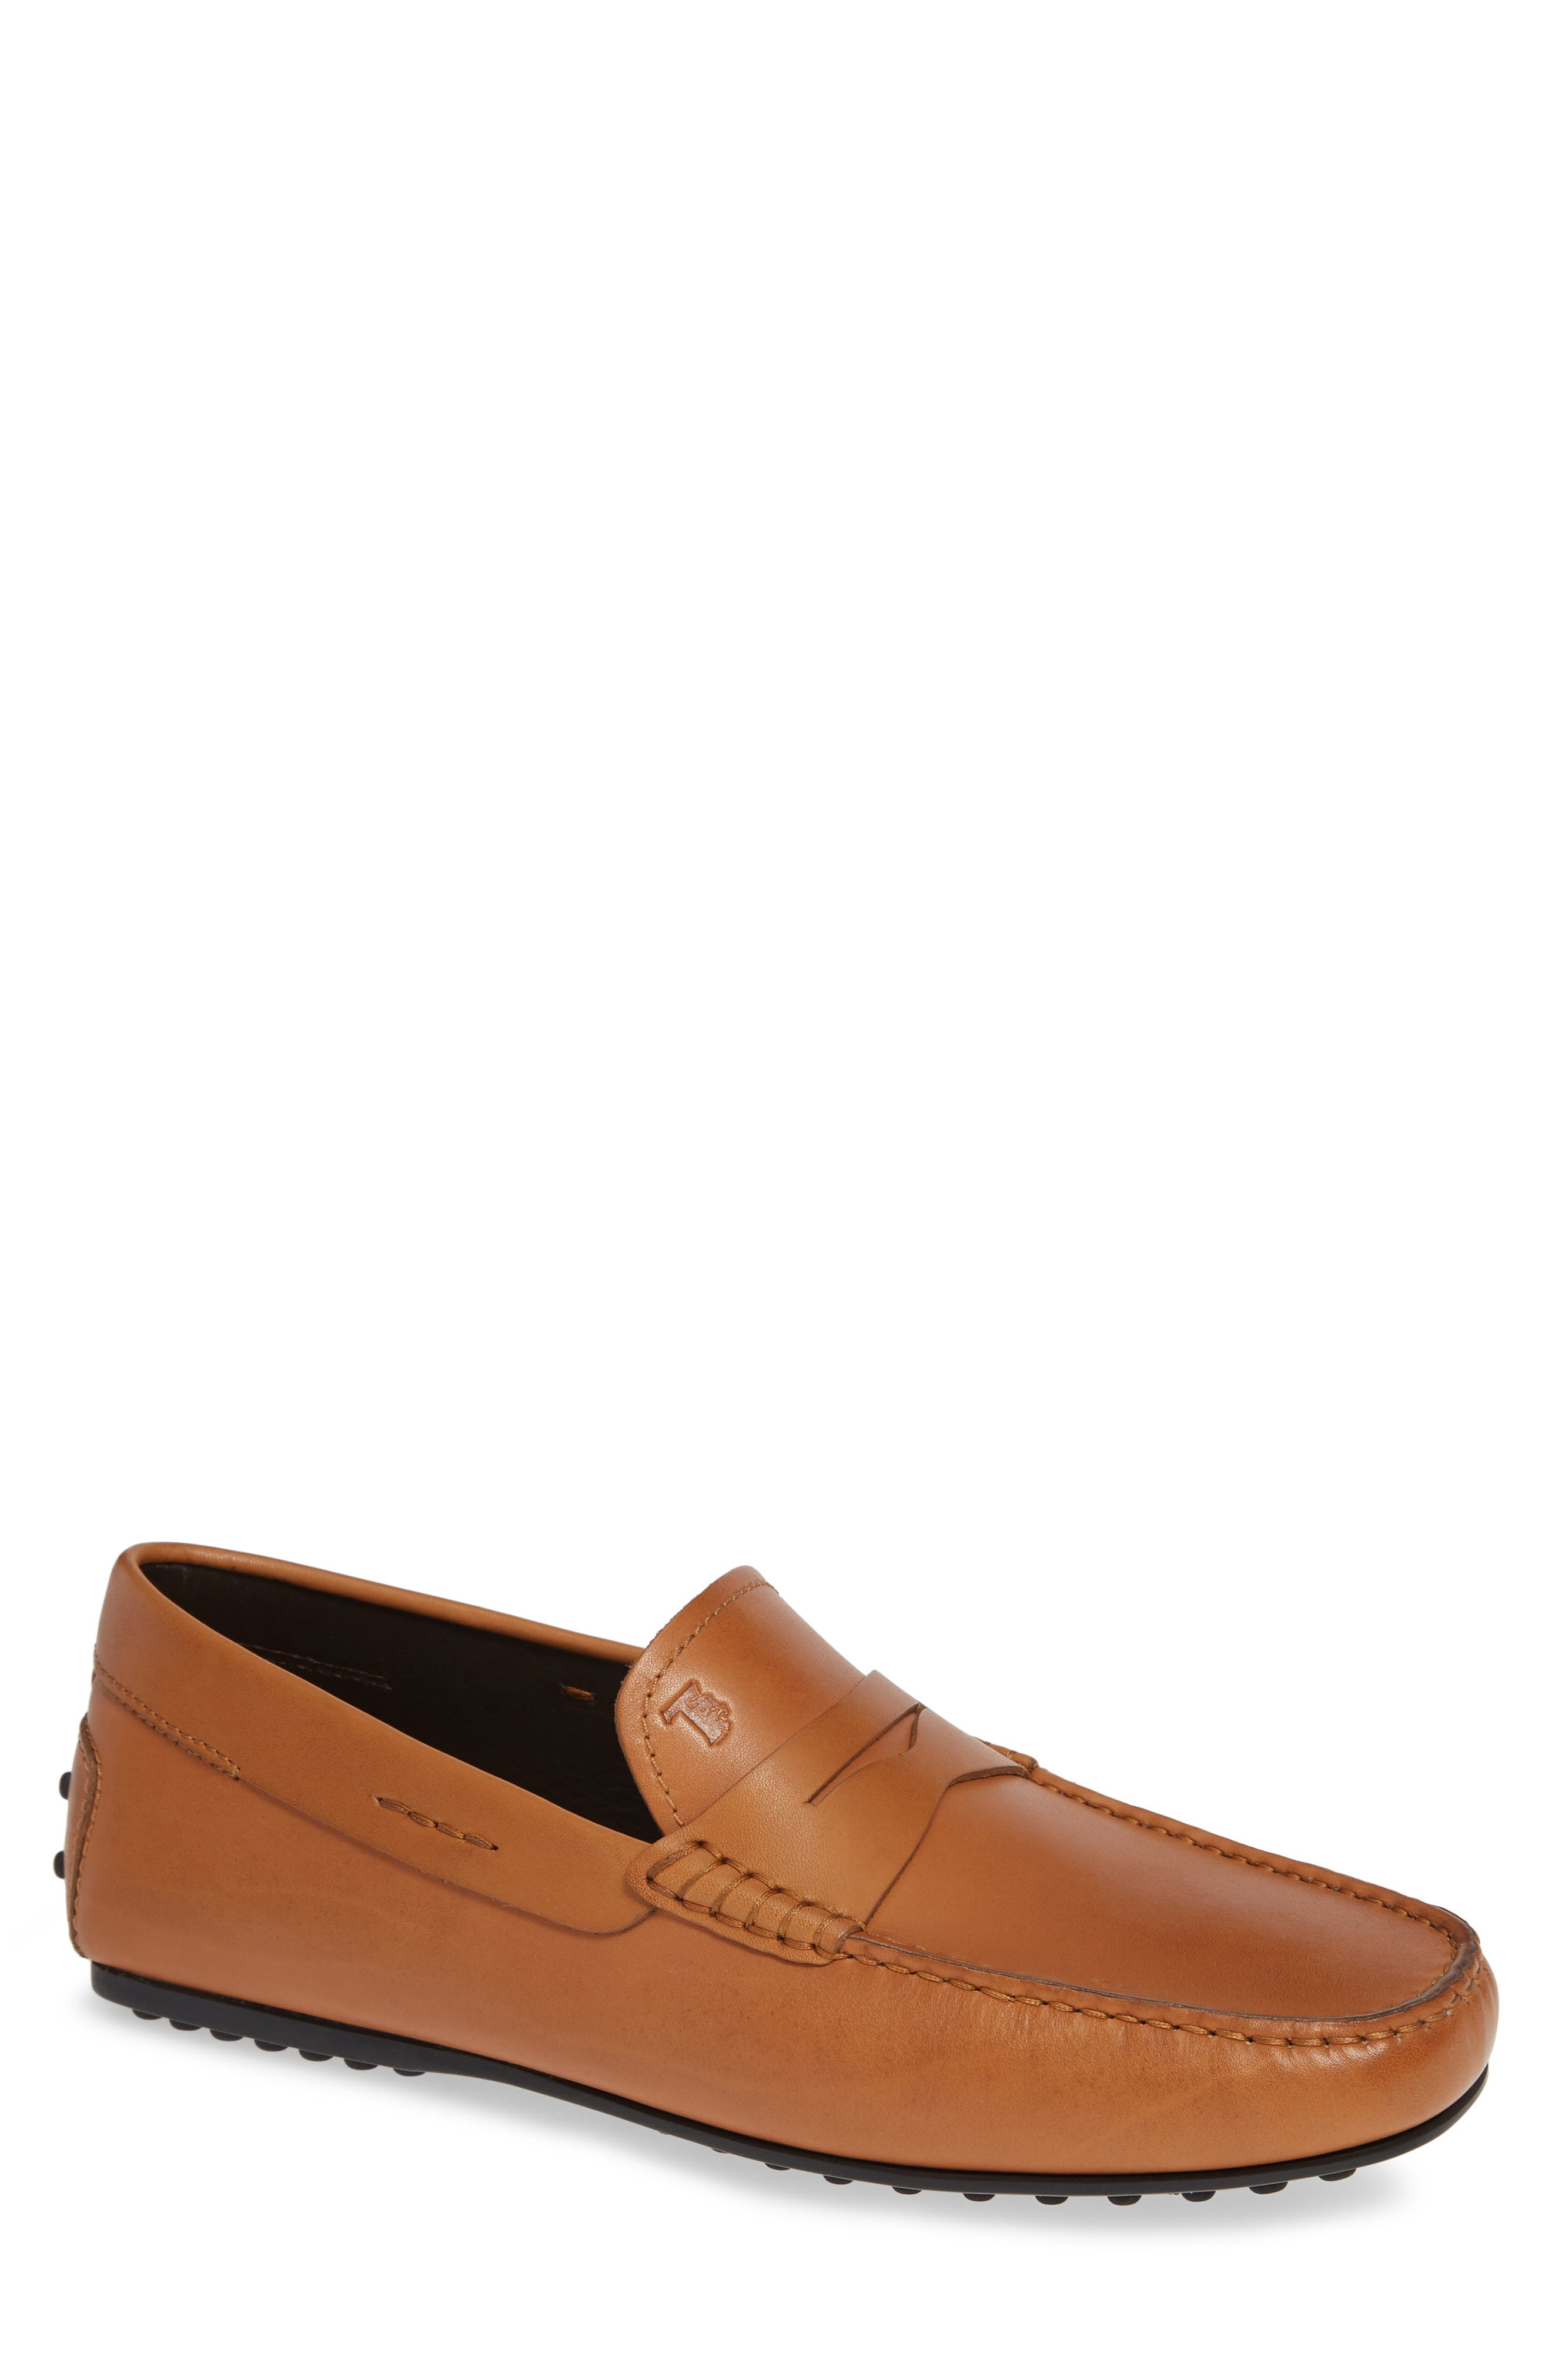 TOD'S, 'City' Penny Driving Shoe, Main thumbnail 1, color, BROWN/BROWN